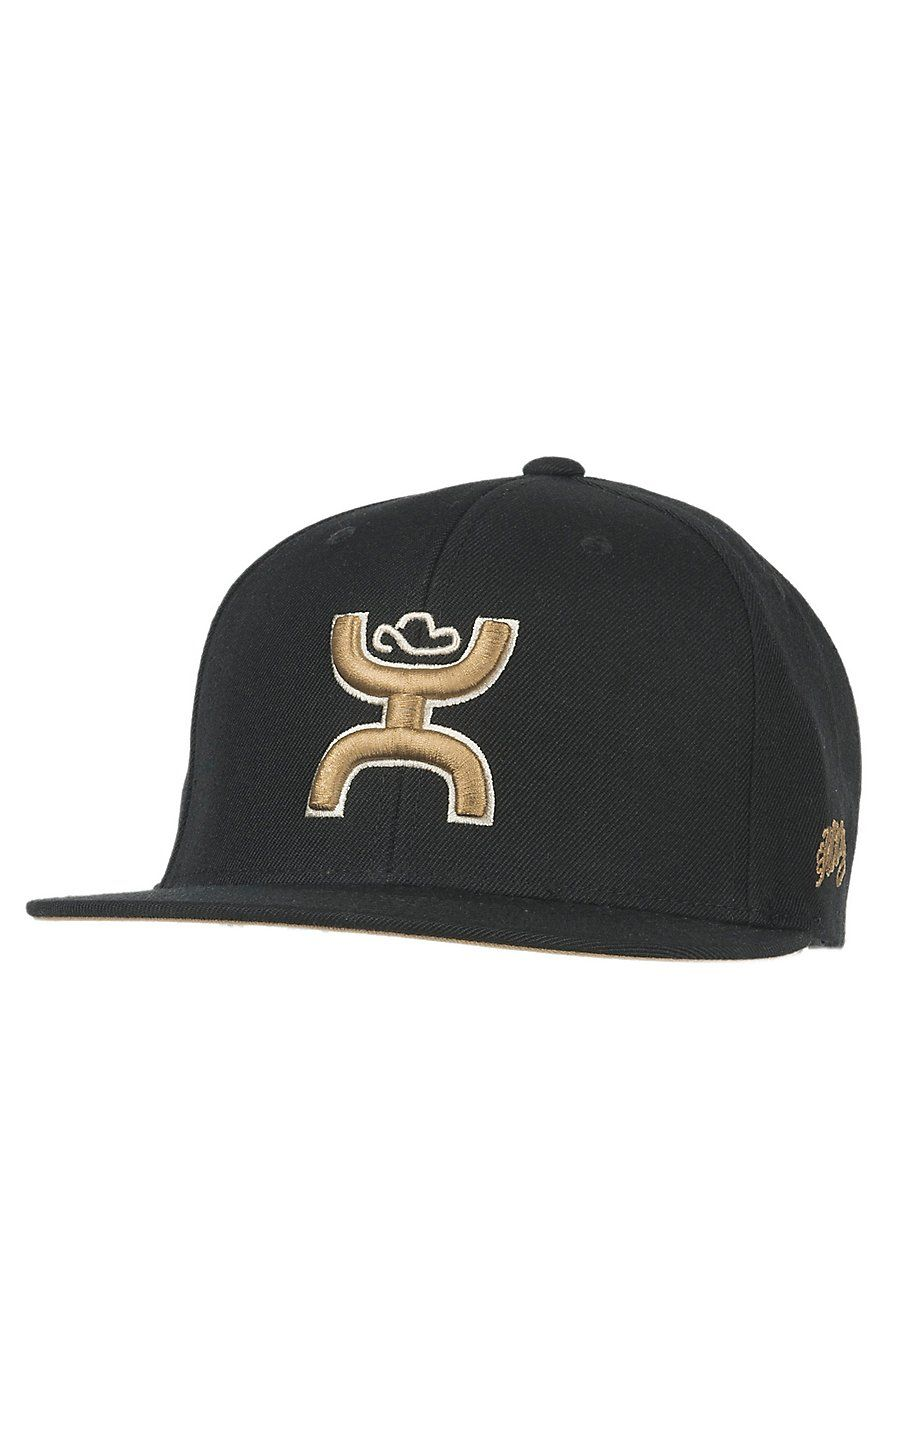 820151fa9e814d HOOey Catcus Ropes Black with Gold Hands Up Logo Snap Back Cap | Cavender's